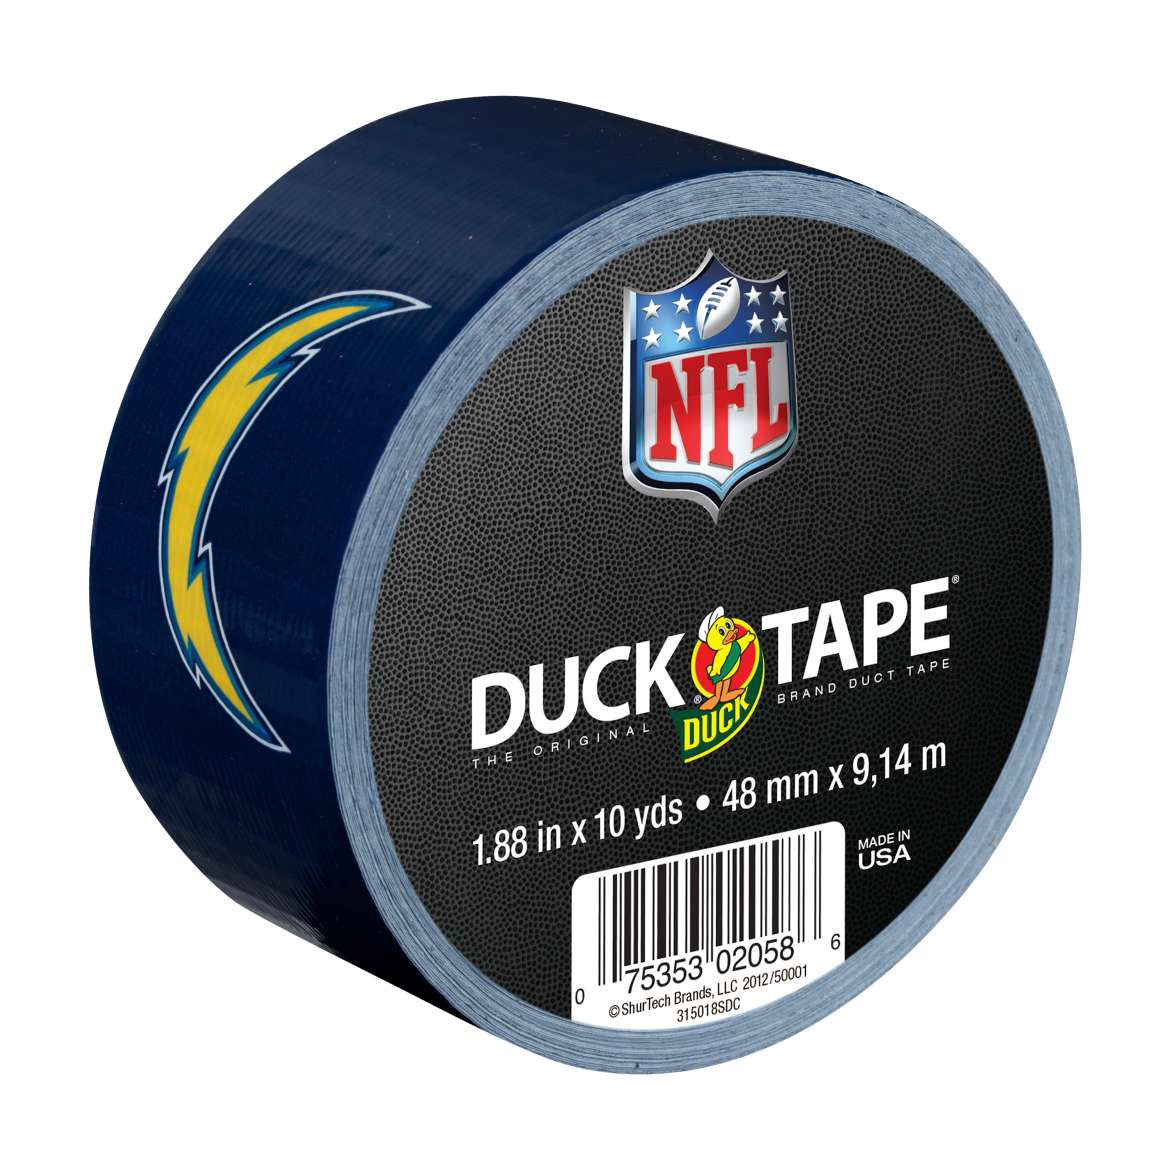 "Duck Brand Duct Tape, NFL Duck Tape, 1.88"" x 10 yard, San Diego Chargers"